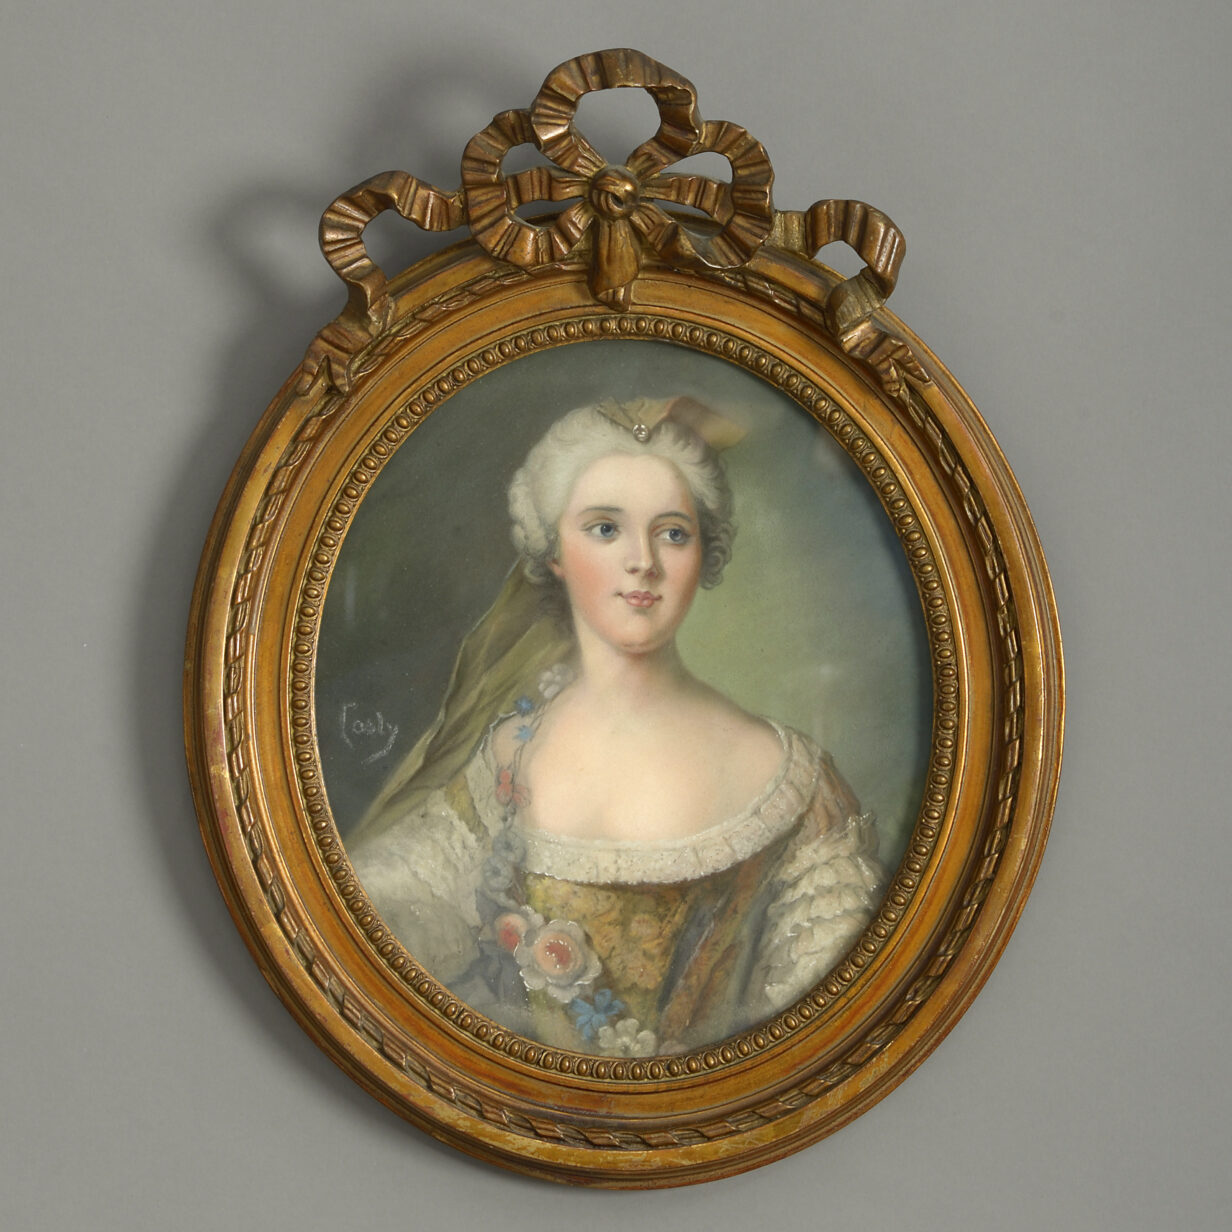 French School, 19th century A pair of portraits of Louise Henriette de Bourbon (1726 – 1759) and Françoise Marie de Bourbon, (1677-1749) Oval pastel on paper; signed indistinctly; held in decorative swaged frames Louise Henriette de Bourbon (1726 -1759), was a French princess, who, by marriage, became Duchess of Chartres (1743–1752), then Duchess of Orléans (1752–1759) upon the death of her father-in-law. In 1752, her husband became the head of the House of Orléans, and the 'Premier prince du sang', the most important personage after the immediate members of the royal family. Françoise Marie de Bourbon, (1677-1749) was the youngest illegitimate daughter of Louis XIV and his mistress, the Marquise de Montespan. At the age of 14, she was wed to her first cousin Phillippe d'Orléans, future Regent of France during the minority of Louis XV. Through two of the eight children she bore him in an unhappy marriage she became the ancestress of several of Europe's Roman Catholic monarchs of the 19th and 20th centuries, notably those of Belgium, Italy, Portugal, Spain, and France.